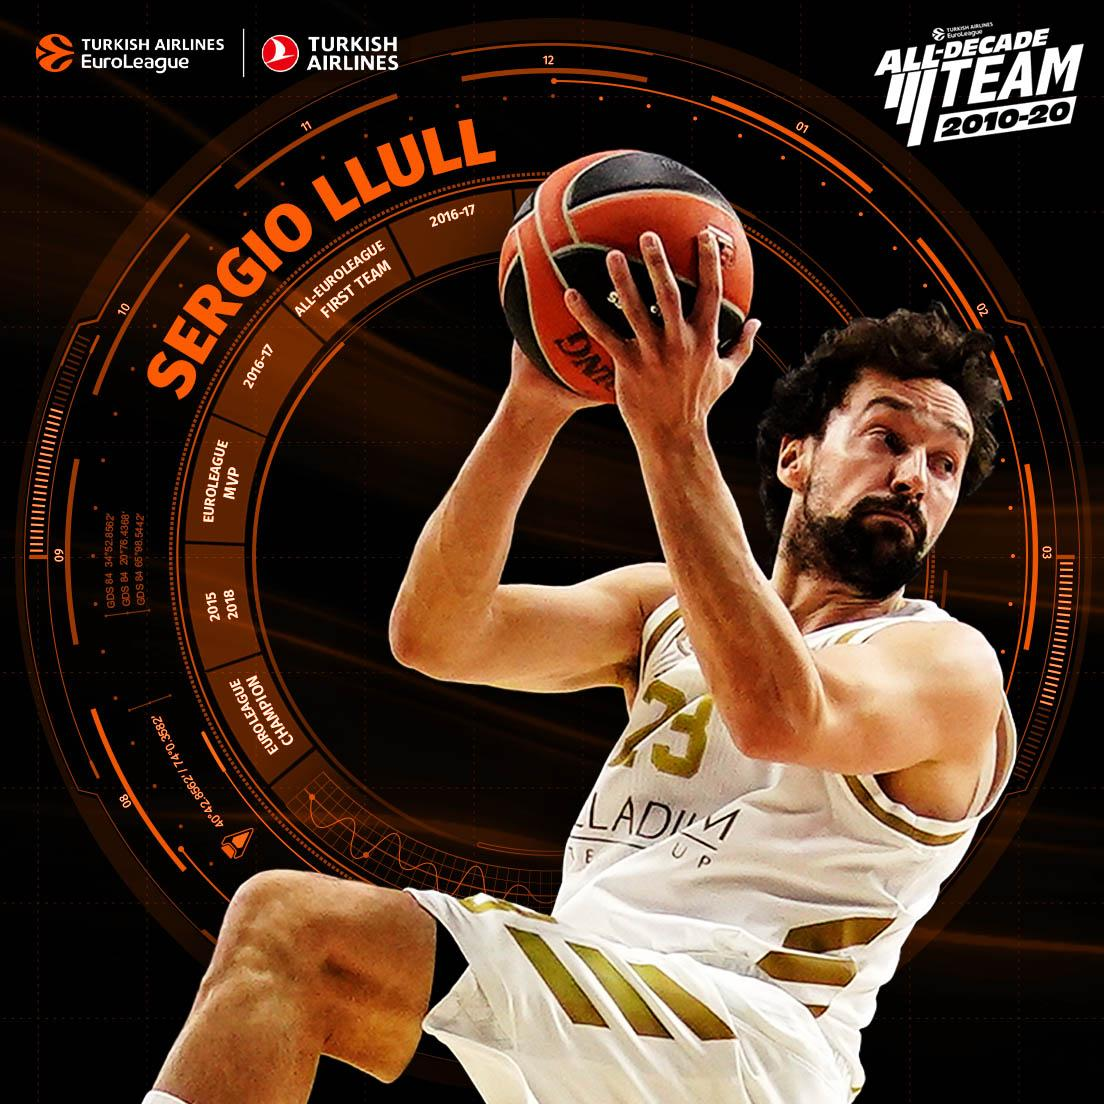 Sergio Llull picked for the 2010-20 All-Decade Team